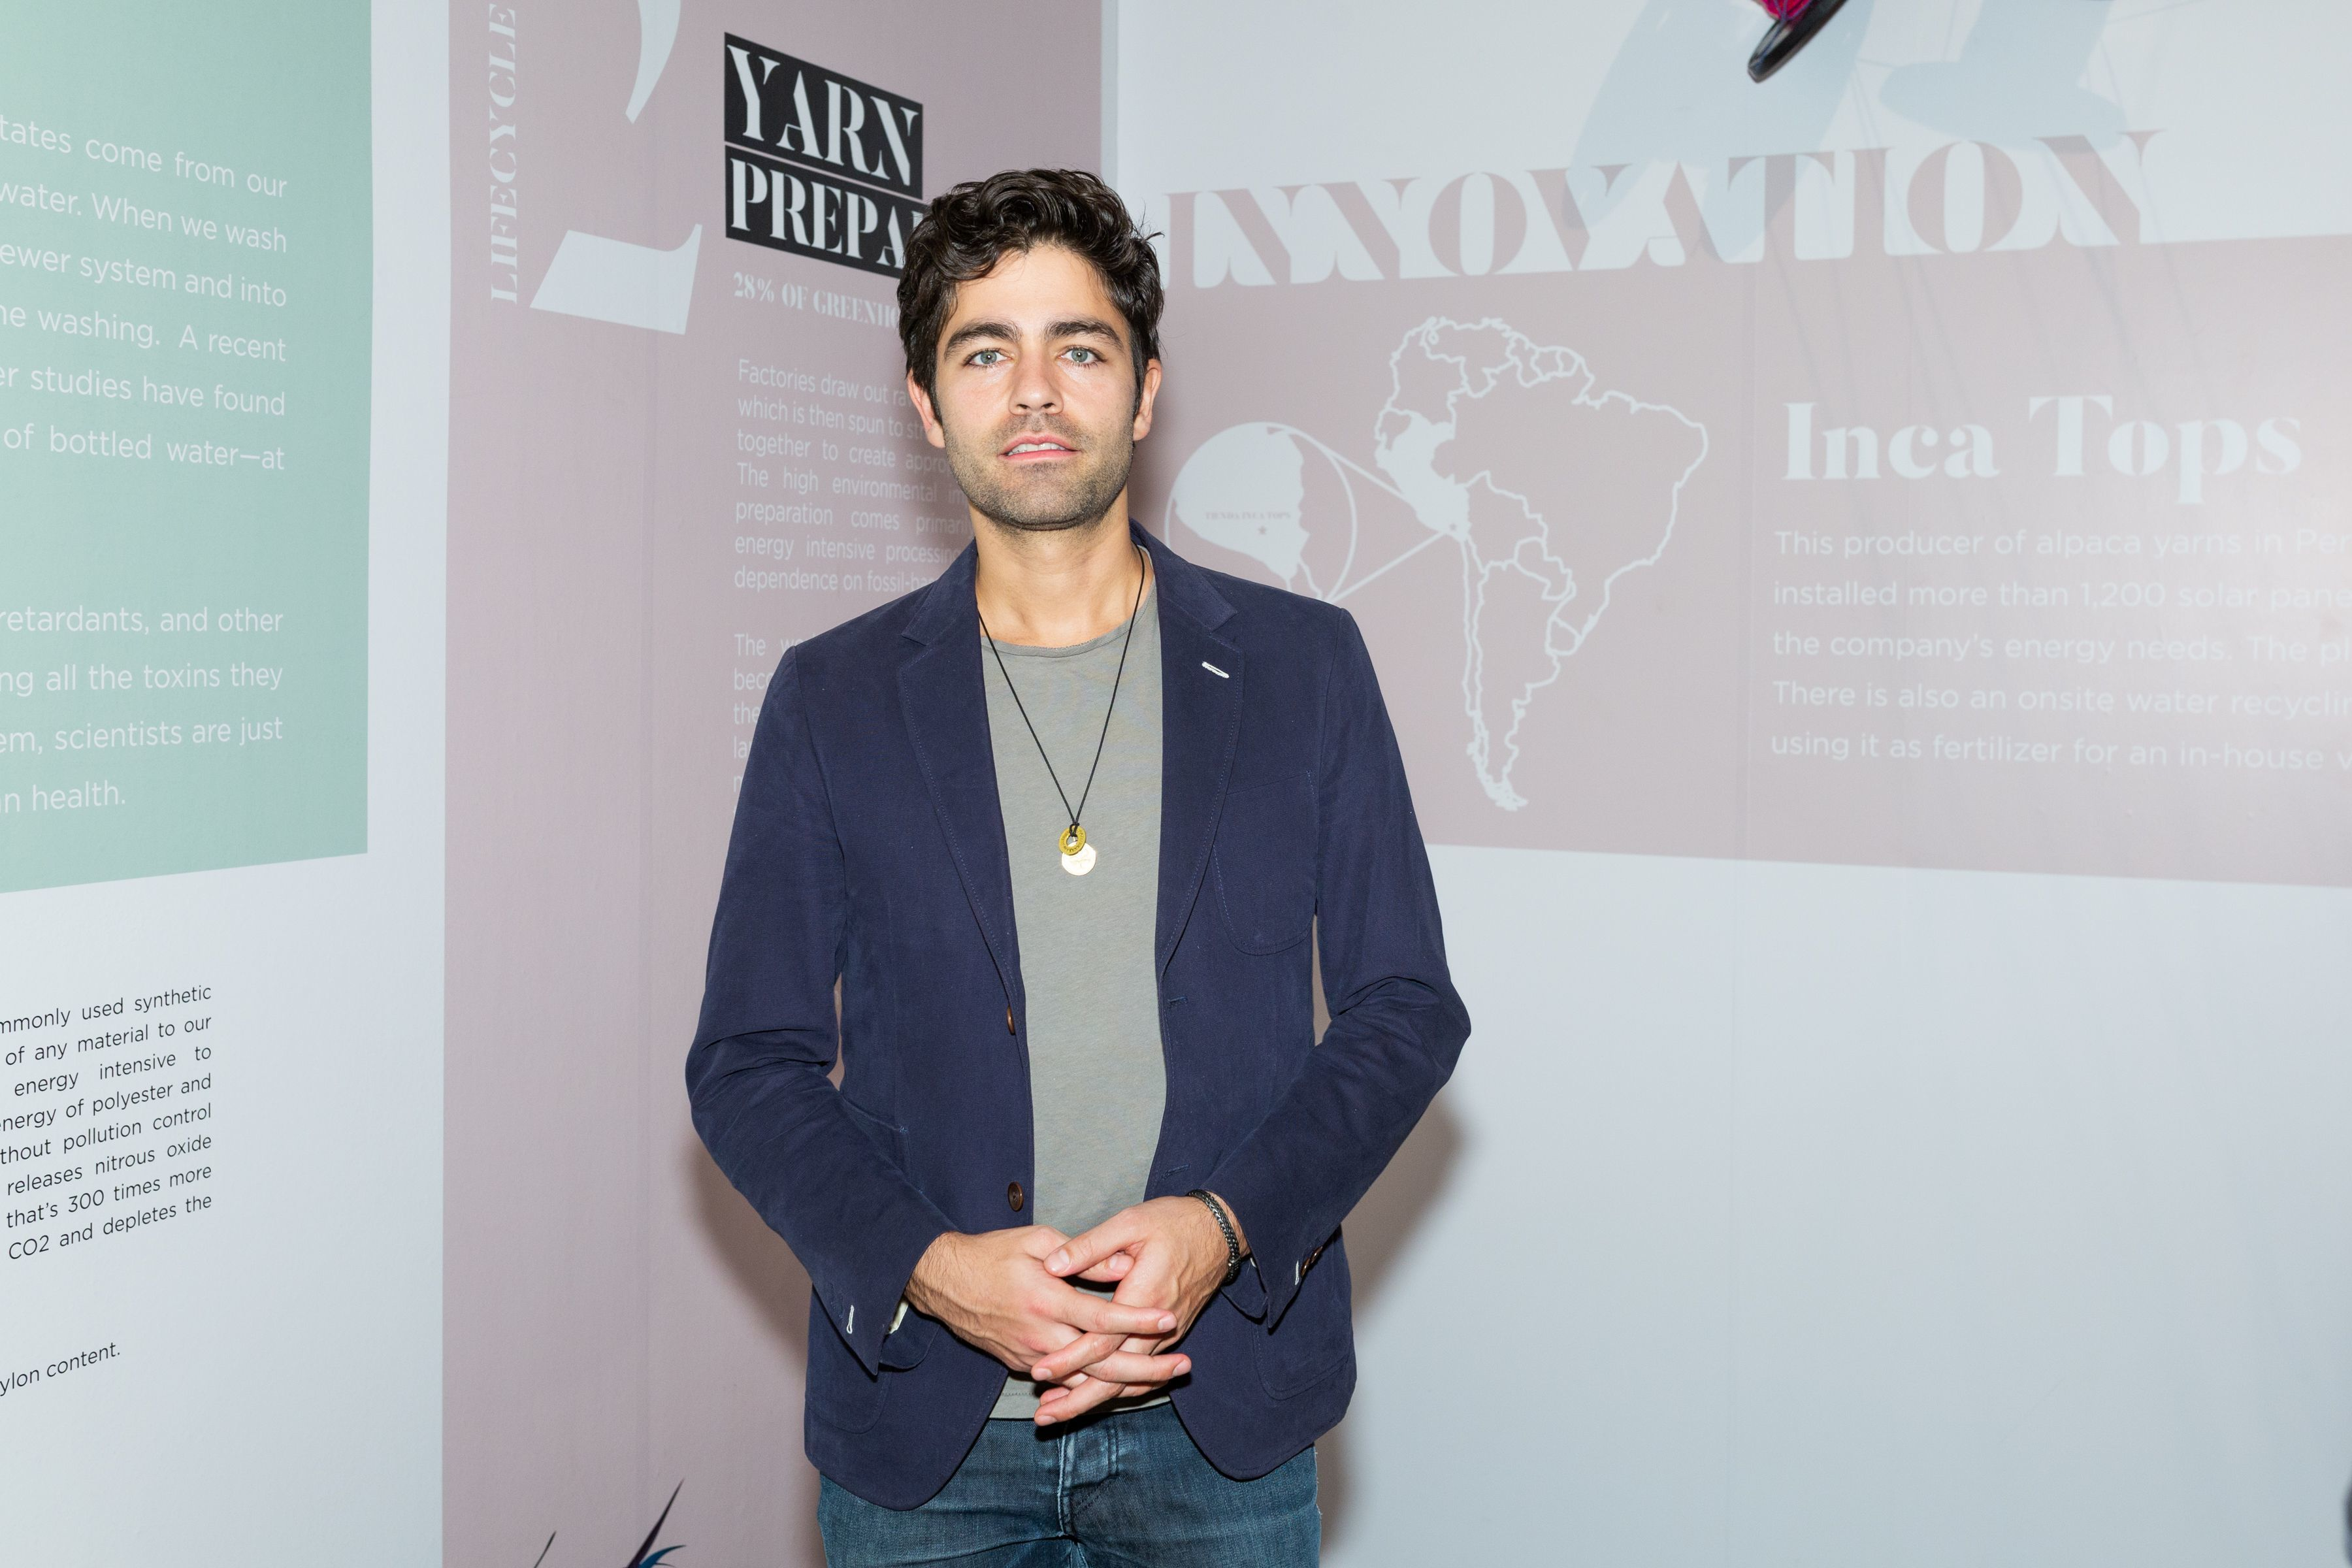 Adrian Grenier attends the Change Fashion Opening Preview in New York City on Nov. 1, 2018.